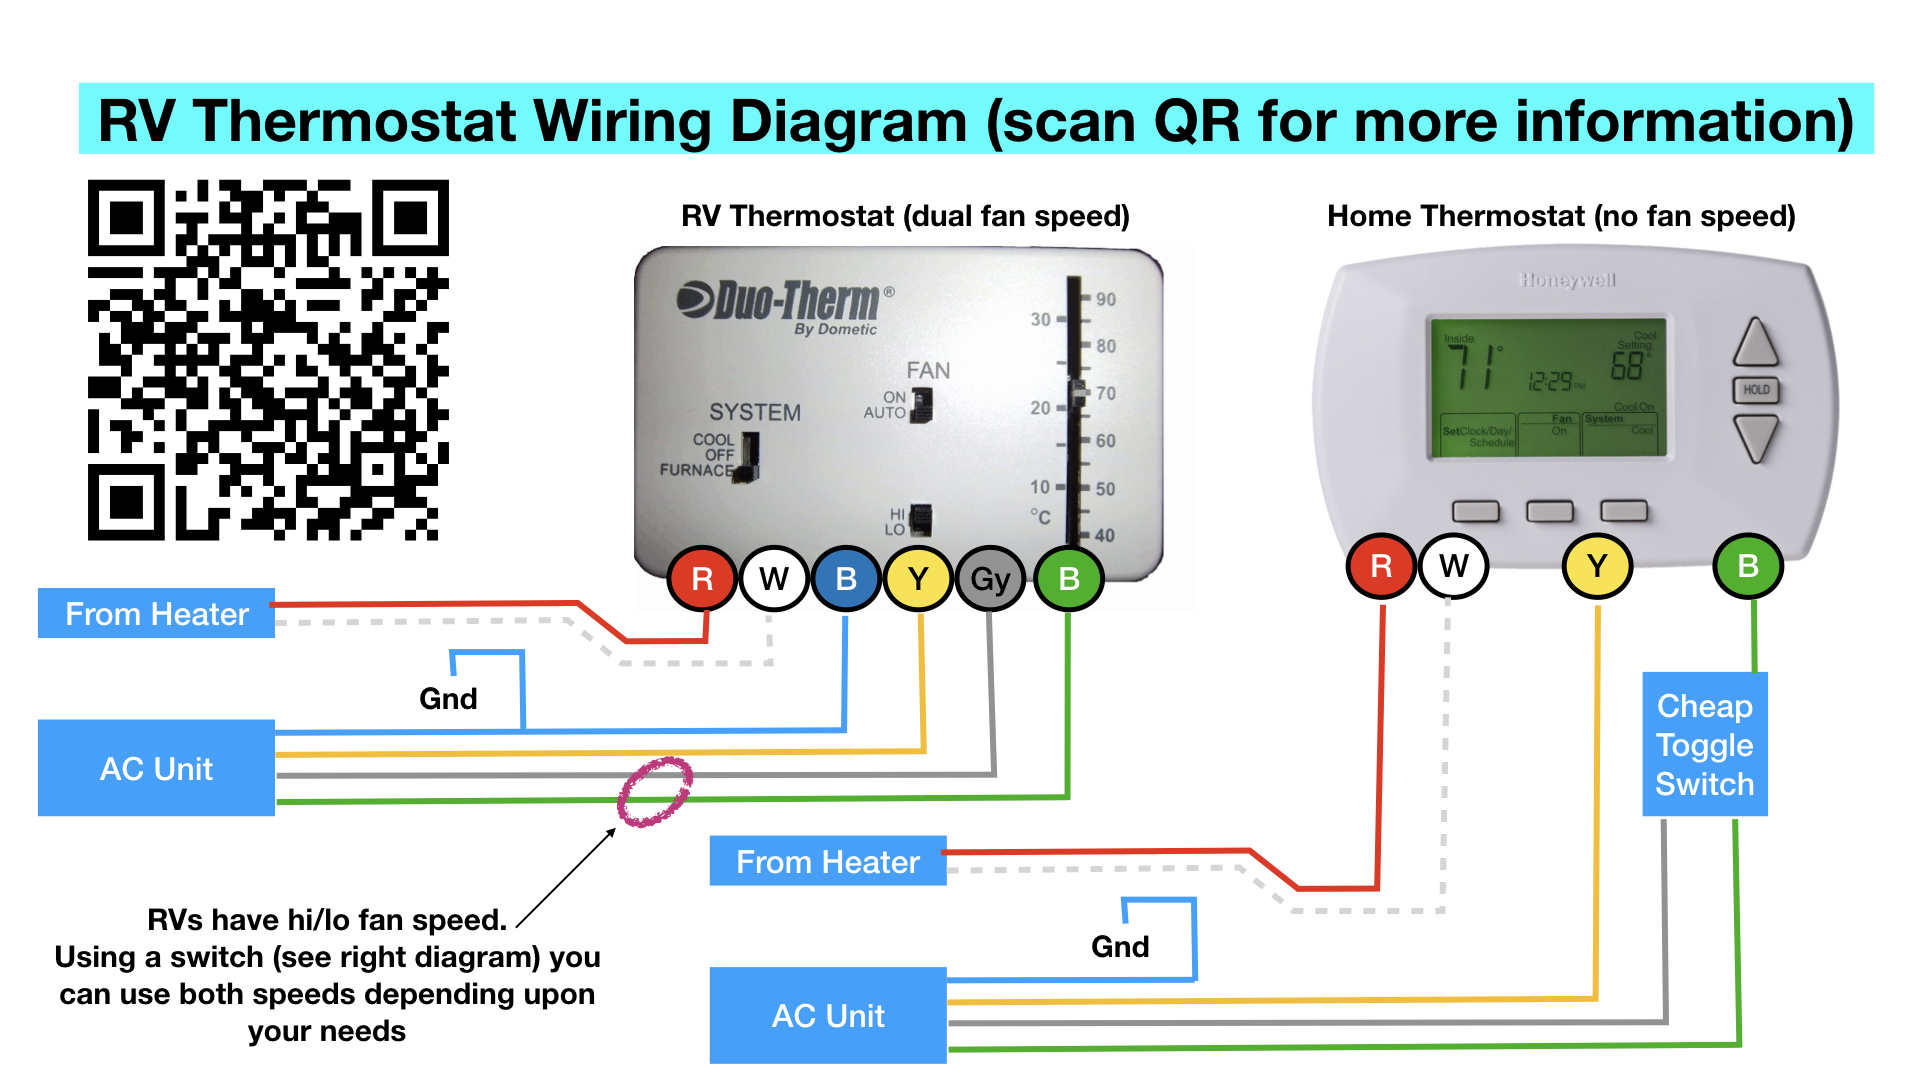 hight resolution of rv furnace thermostat wiring diagram wiring diagram technic propane furnace thermostat wiring